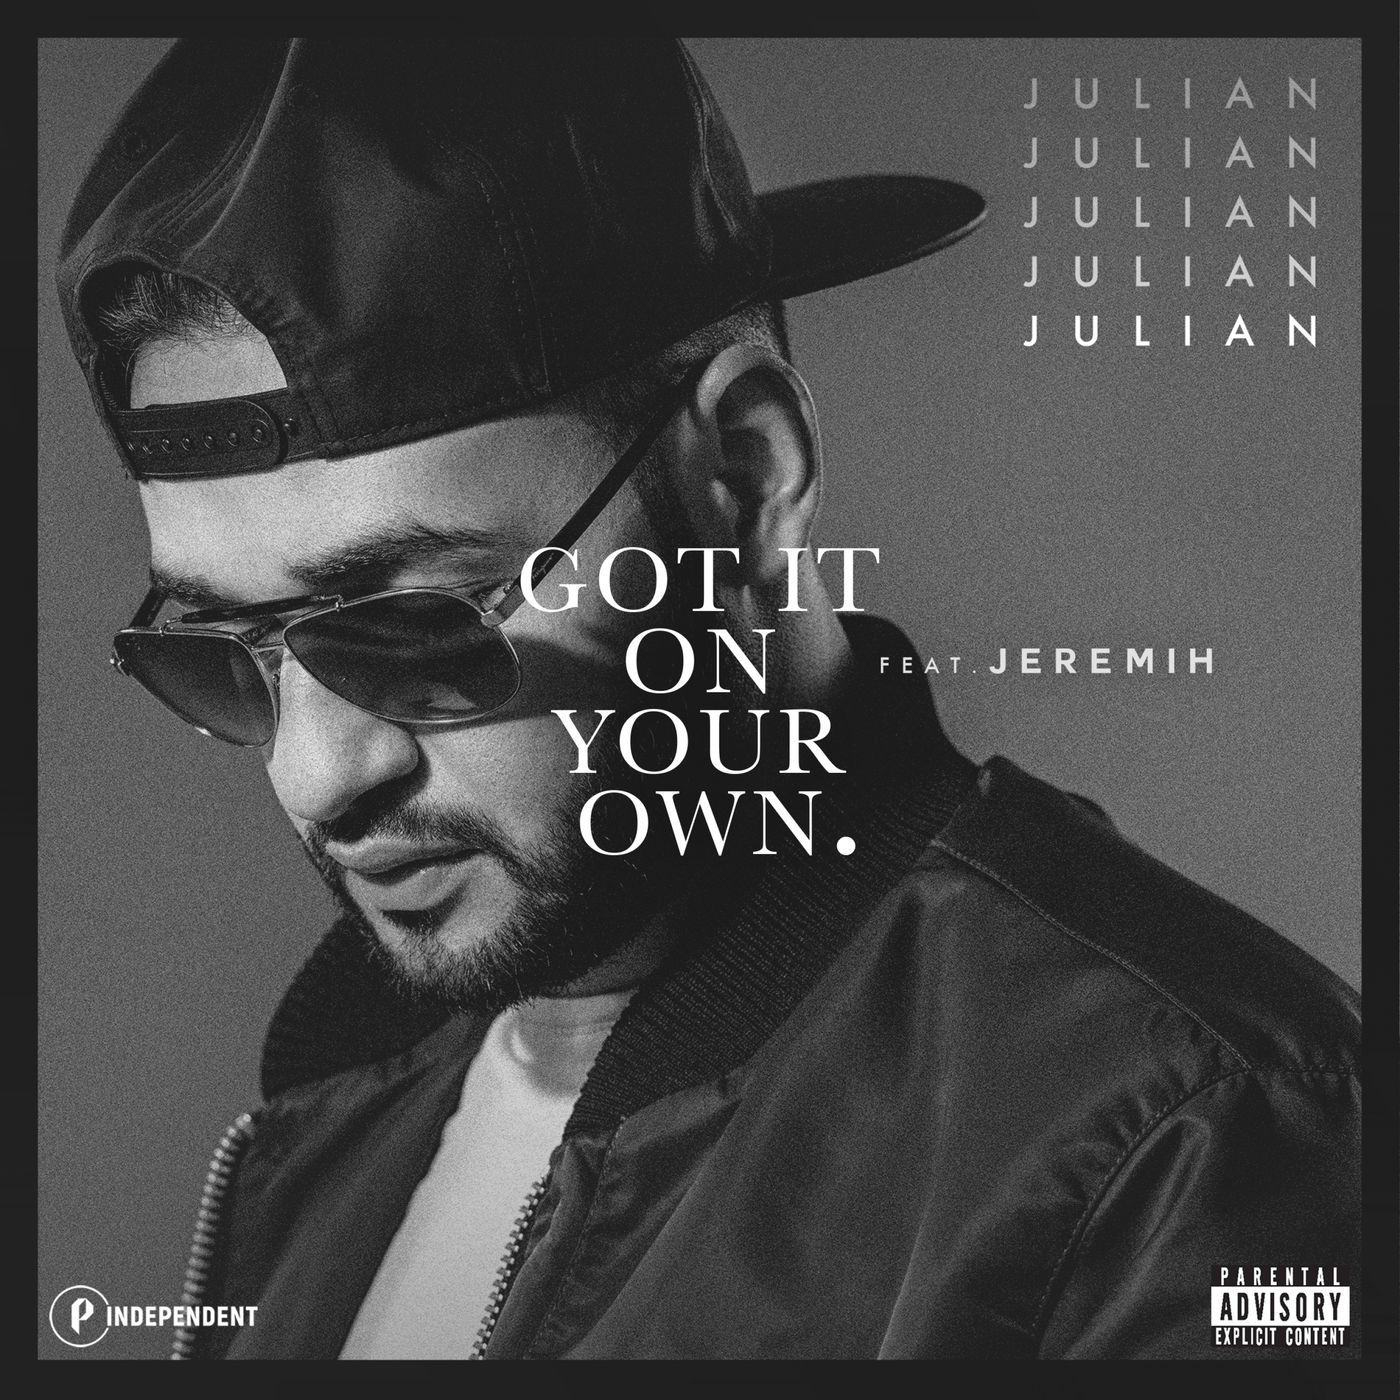 Julian - Got It On Your Own (feat. Jeremih) - Single Cover